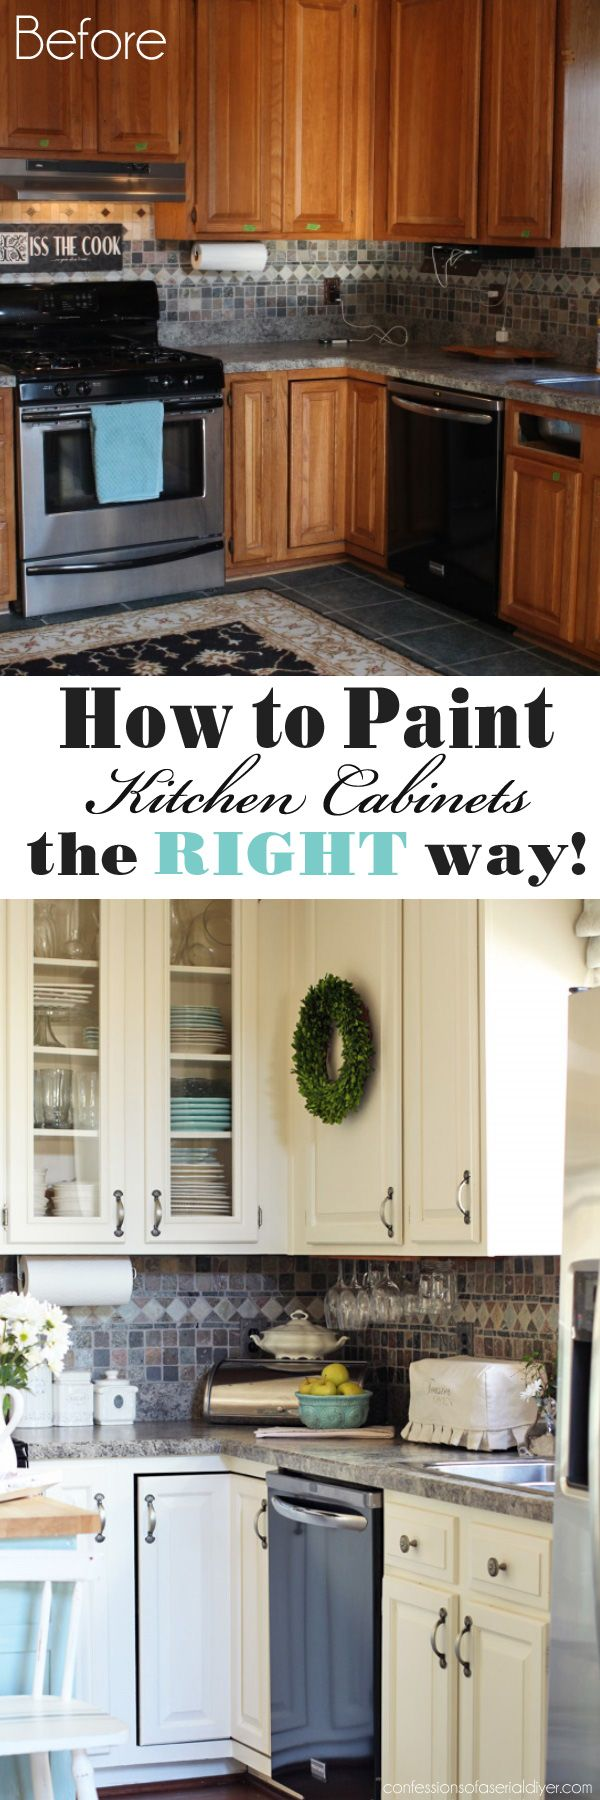 A 1 Custom Cabinets How To Paint Kitchen Cabinets The Right Way From Confessions Of A